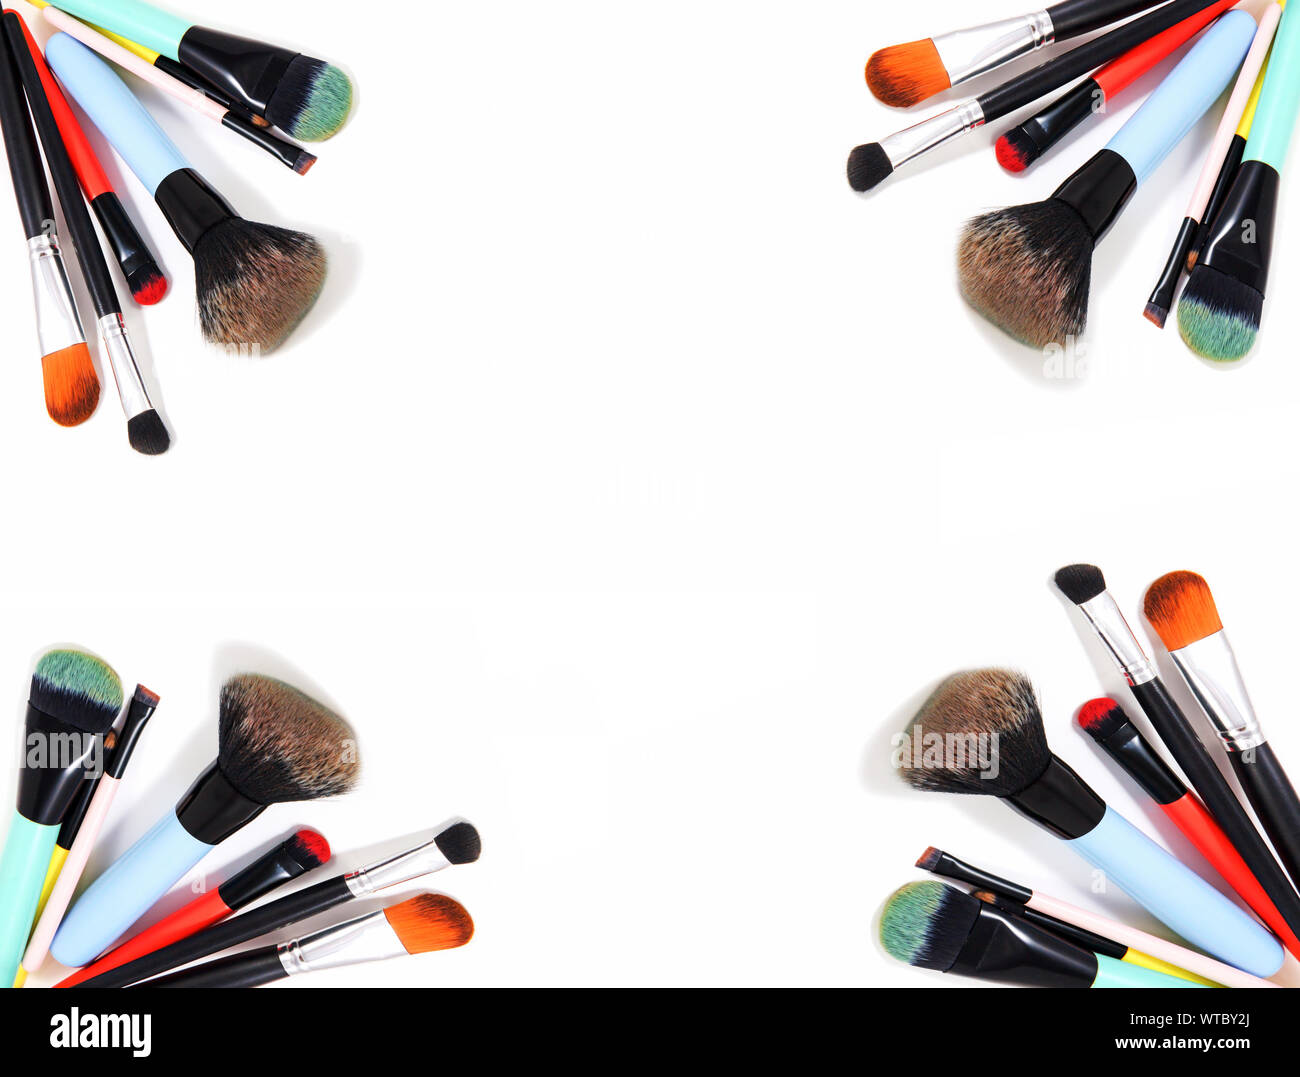 Professional makeup brushes and makeup tools, accessory on white background with copy space for text. beauty, fashion, party and shopping concept, top Stock Photo